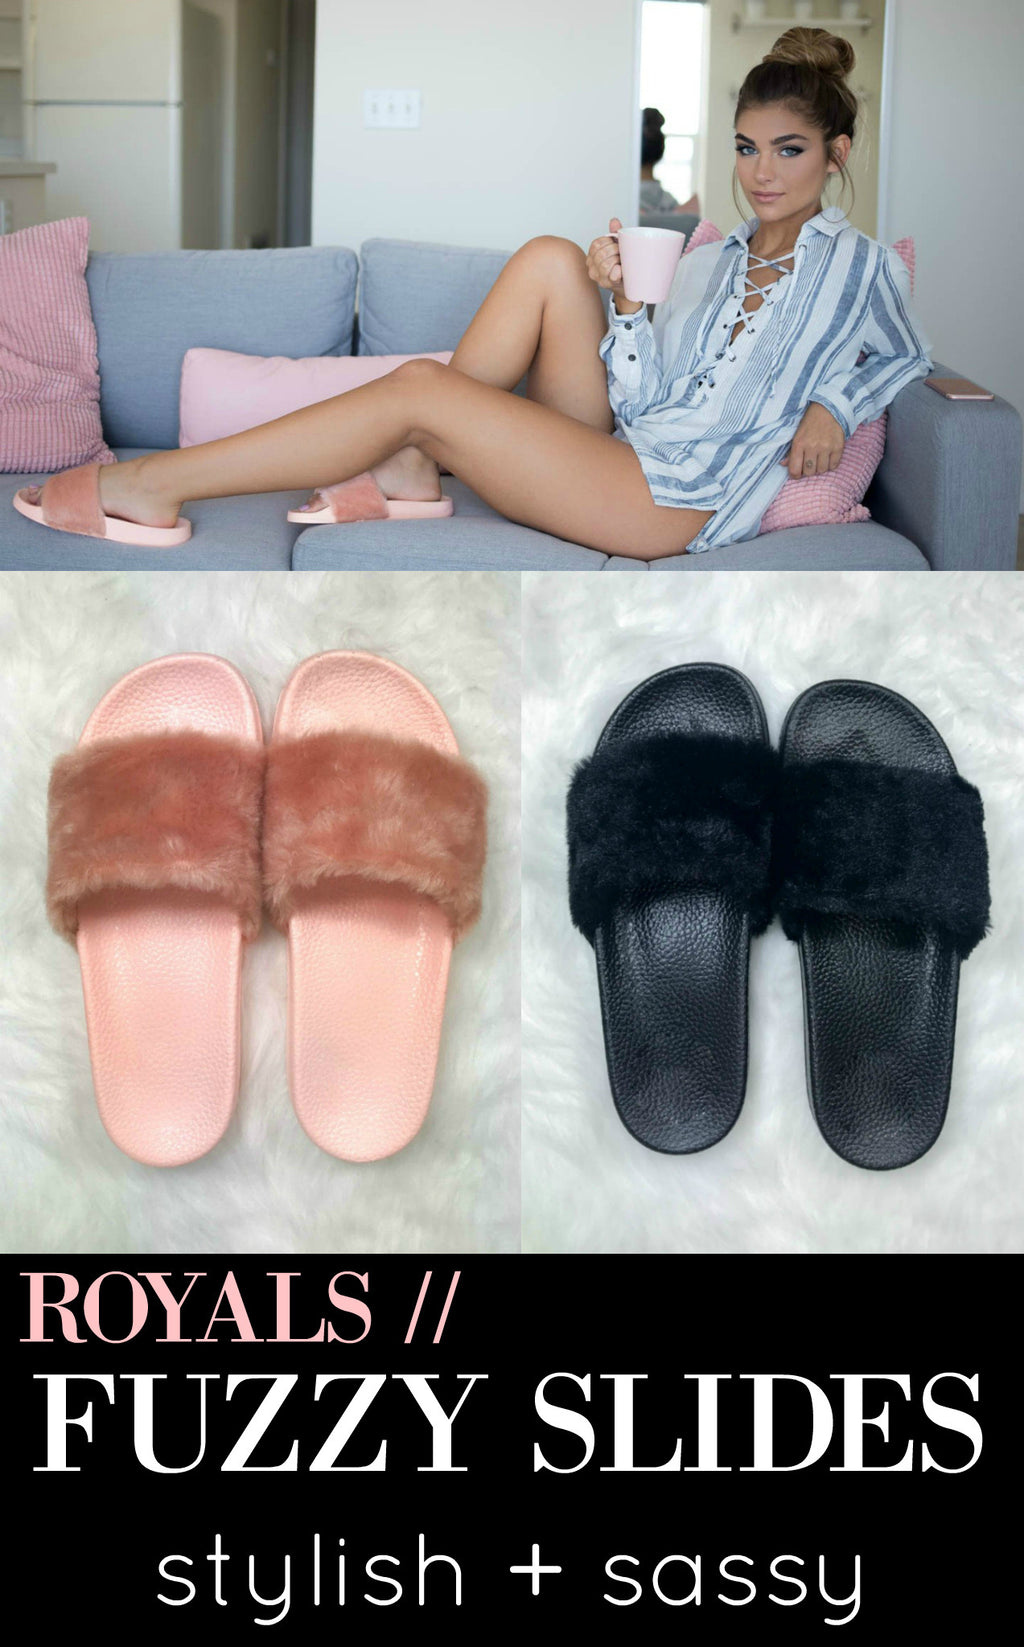 Royals Fuzzy Slides